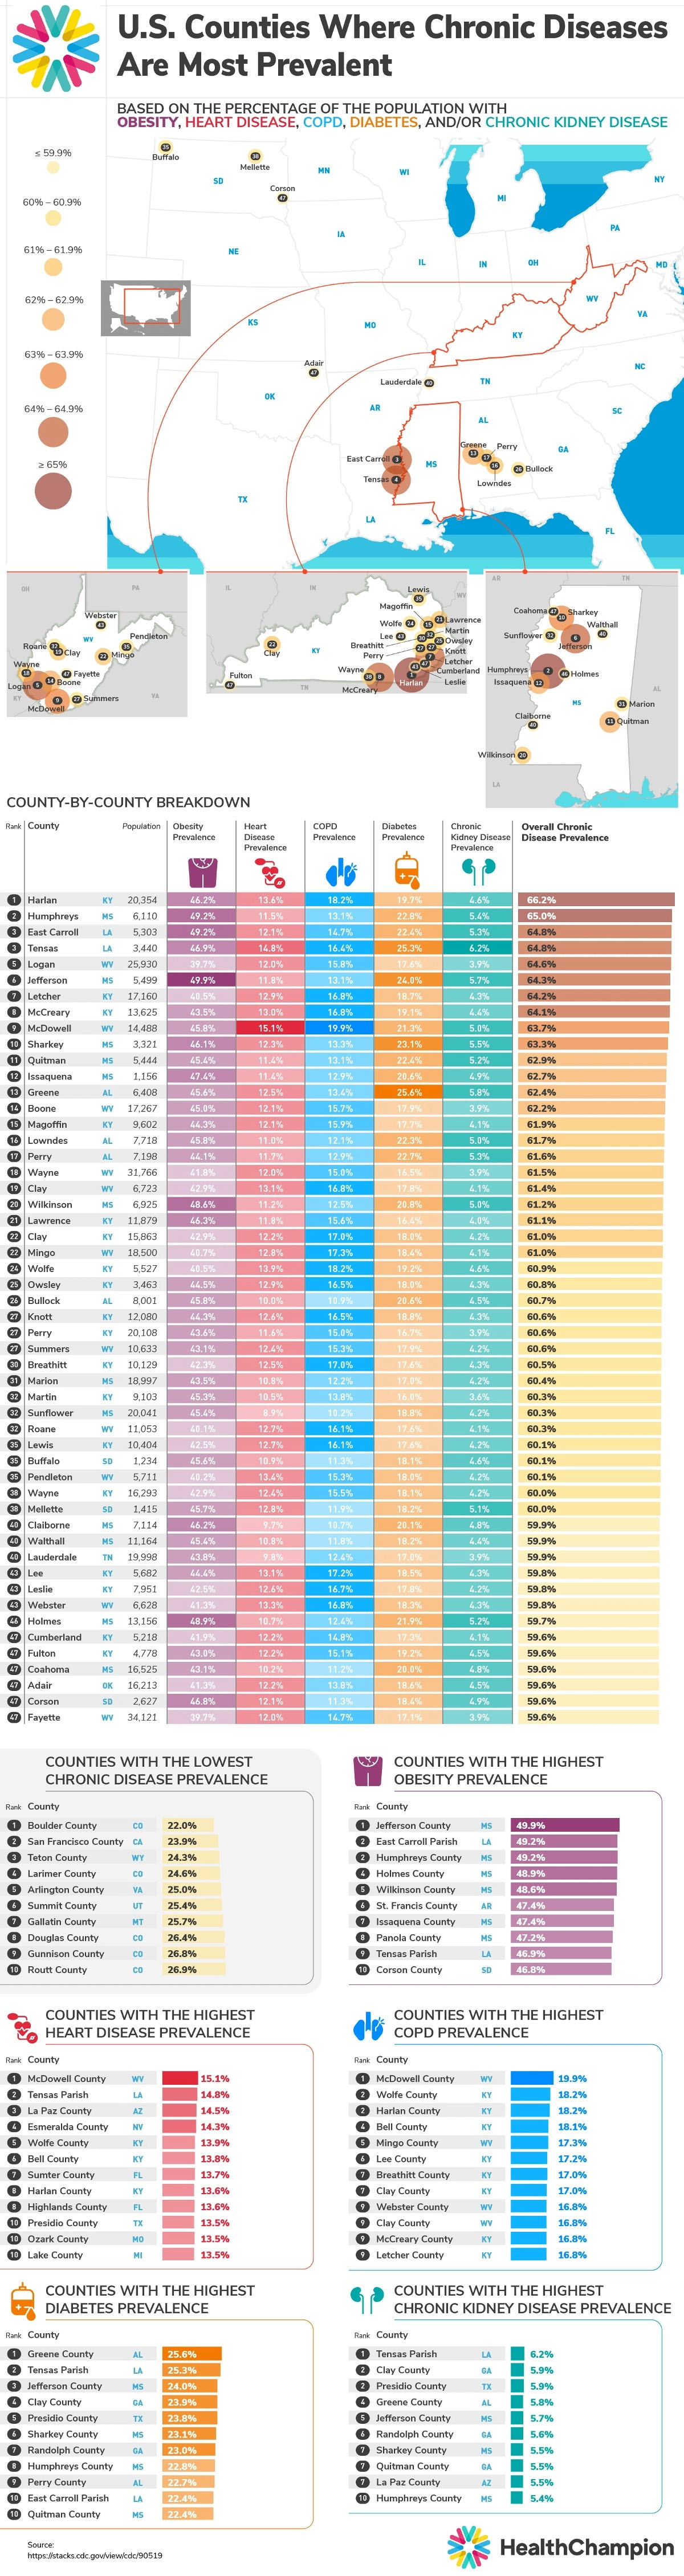 50 U.S. Counties Where Chronic Diseases Are Most Prevalent